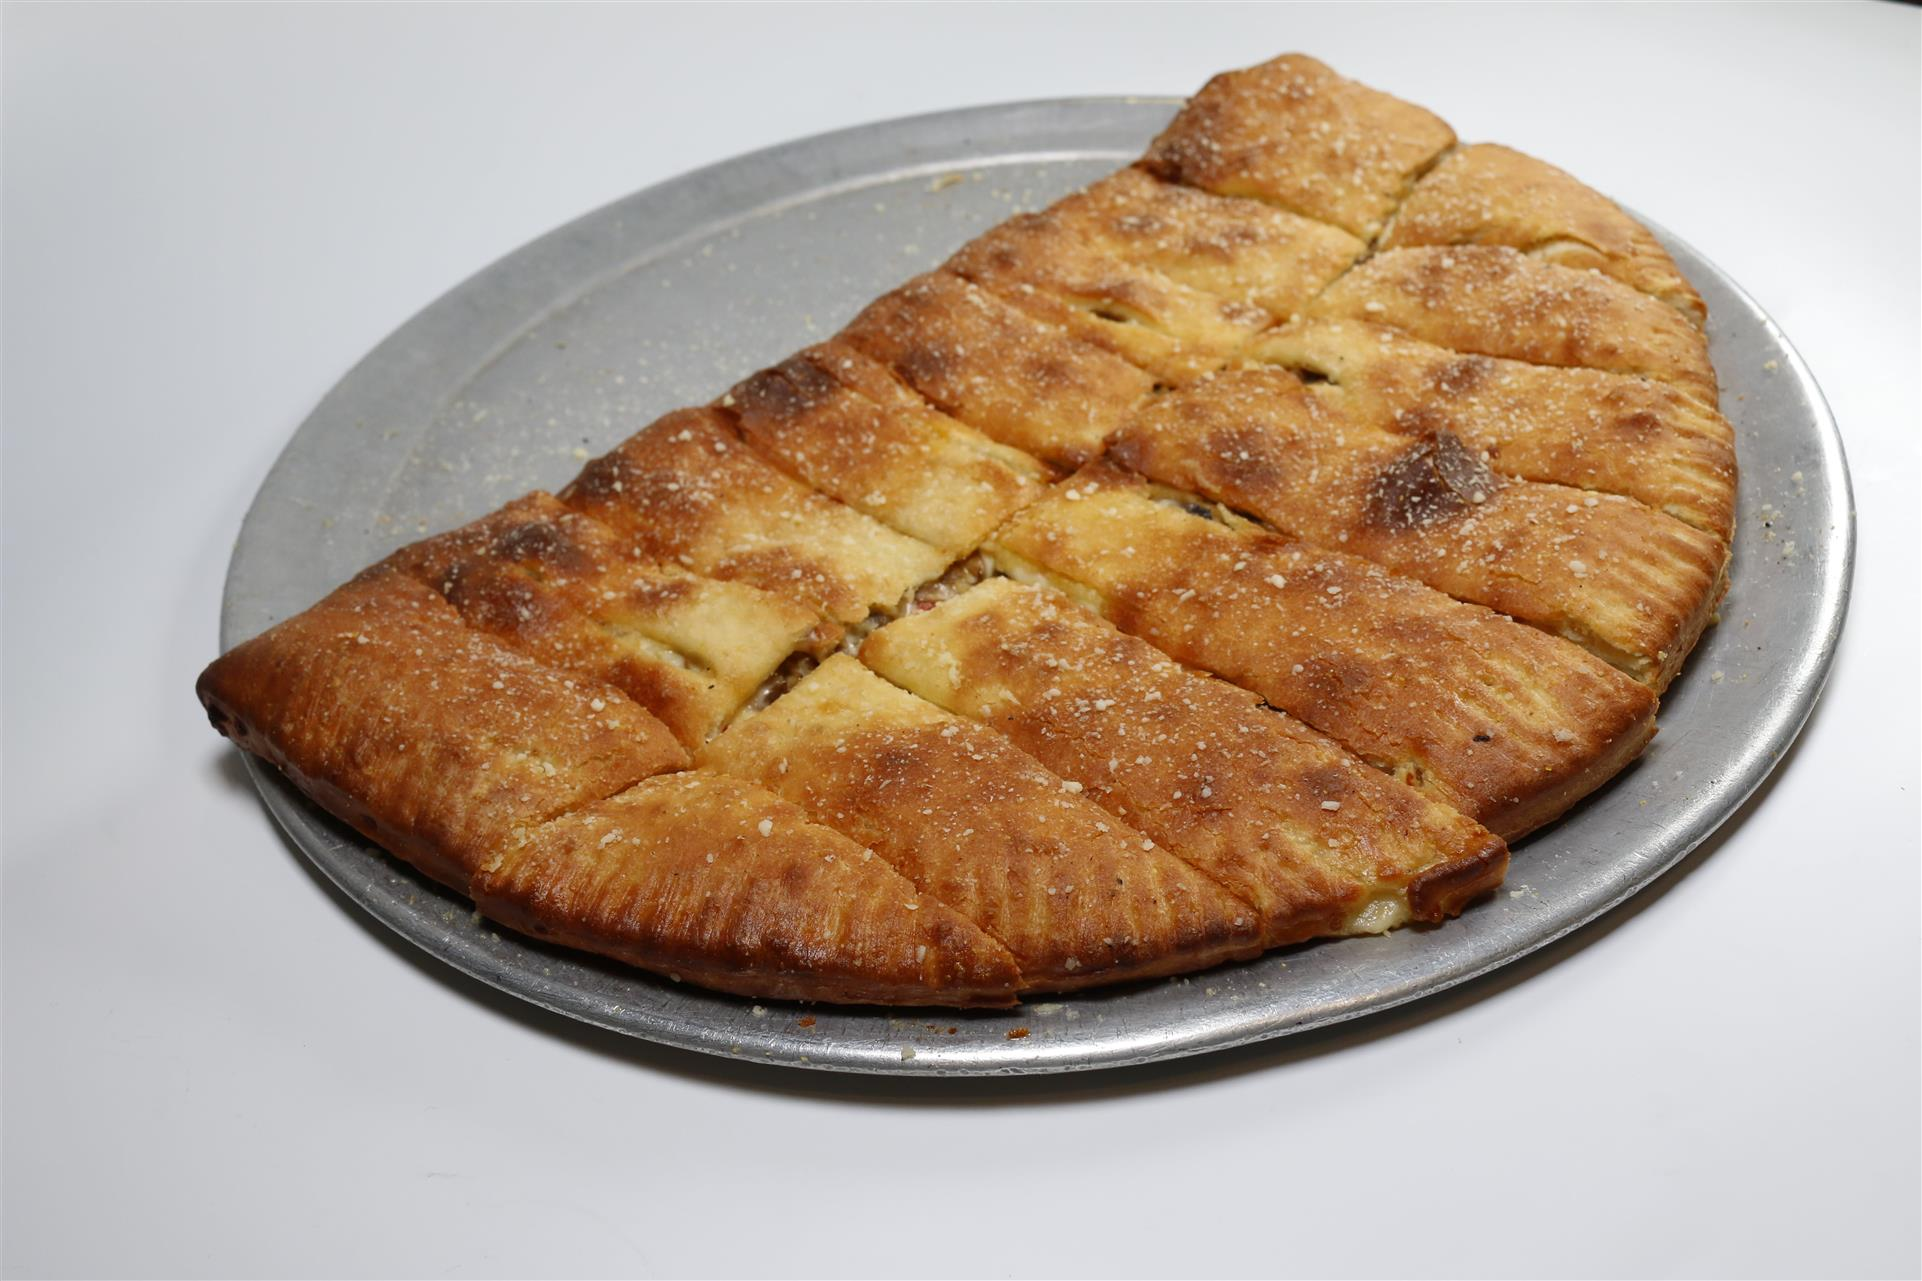 baked calzone cut into pieces on a metal tray